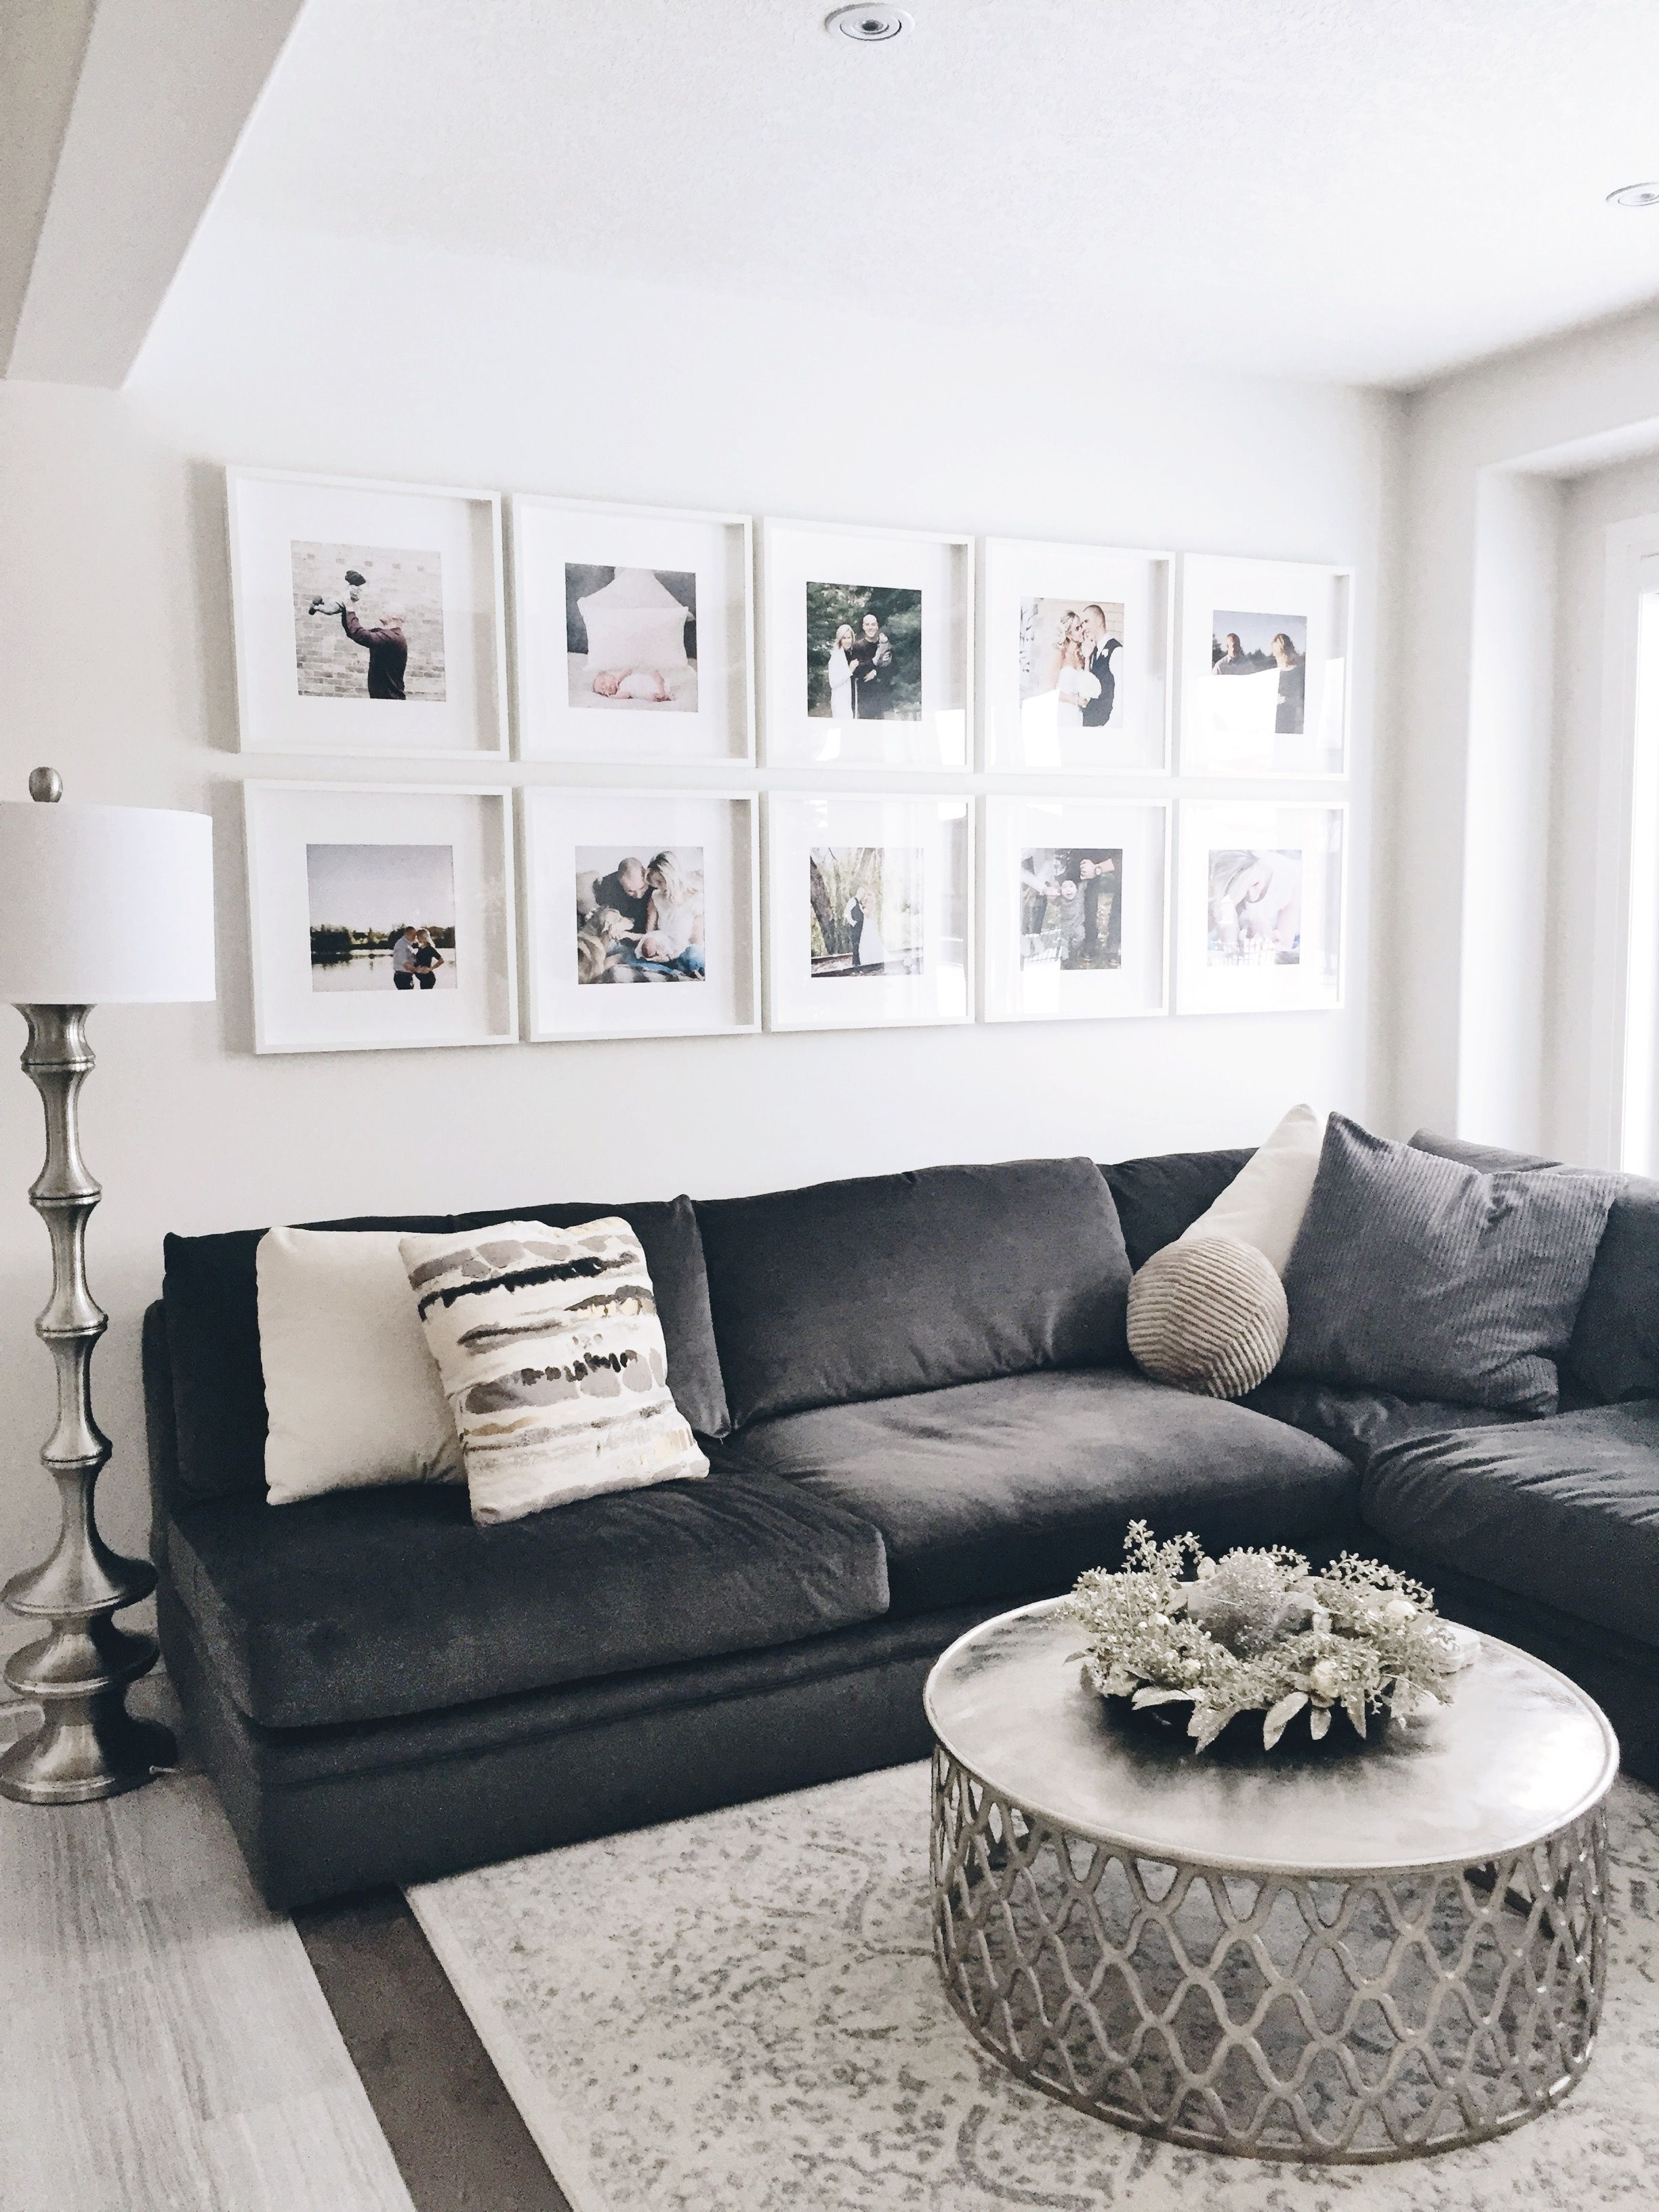 Photo Wall Ribba Ikea Frames Photo Gallery Picture Wall Living Room Living Room Photos Ikea Living Room #photo #frames #living #room